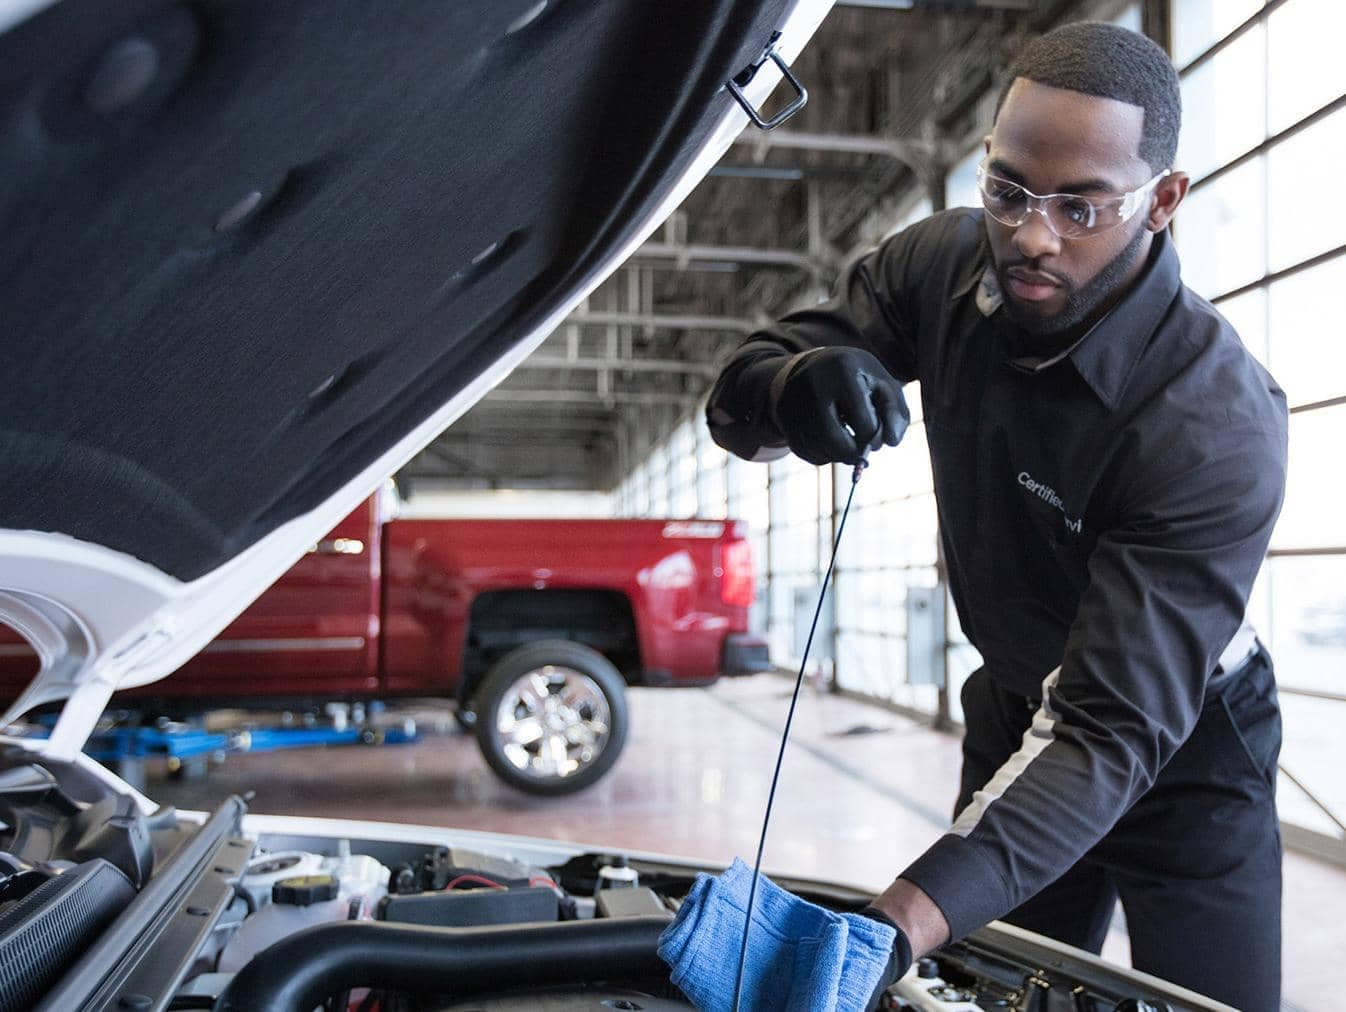 Chevrolet Service Technician inspecting oil